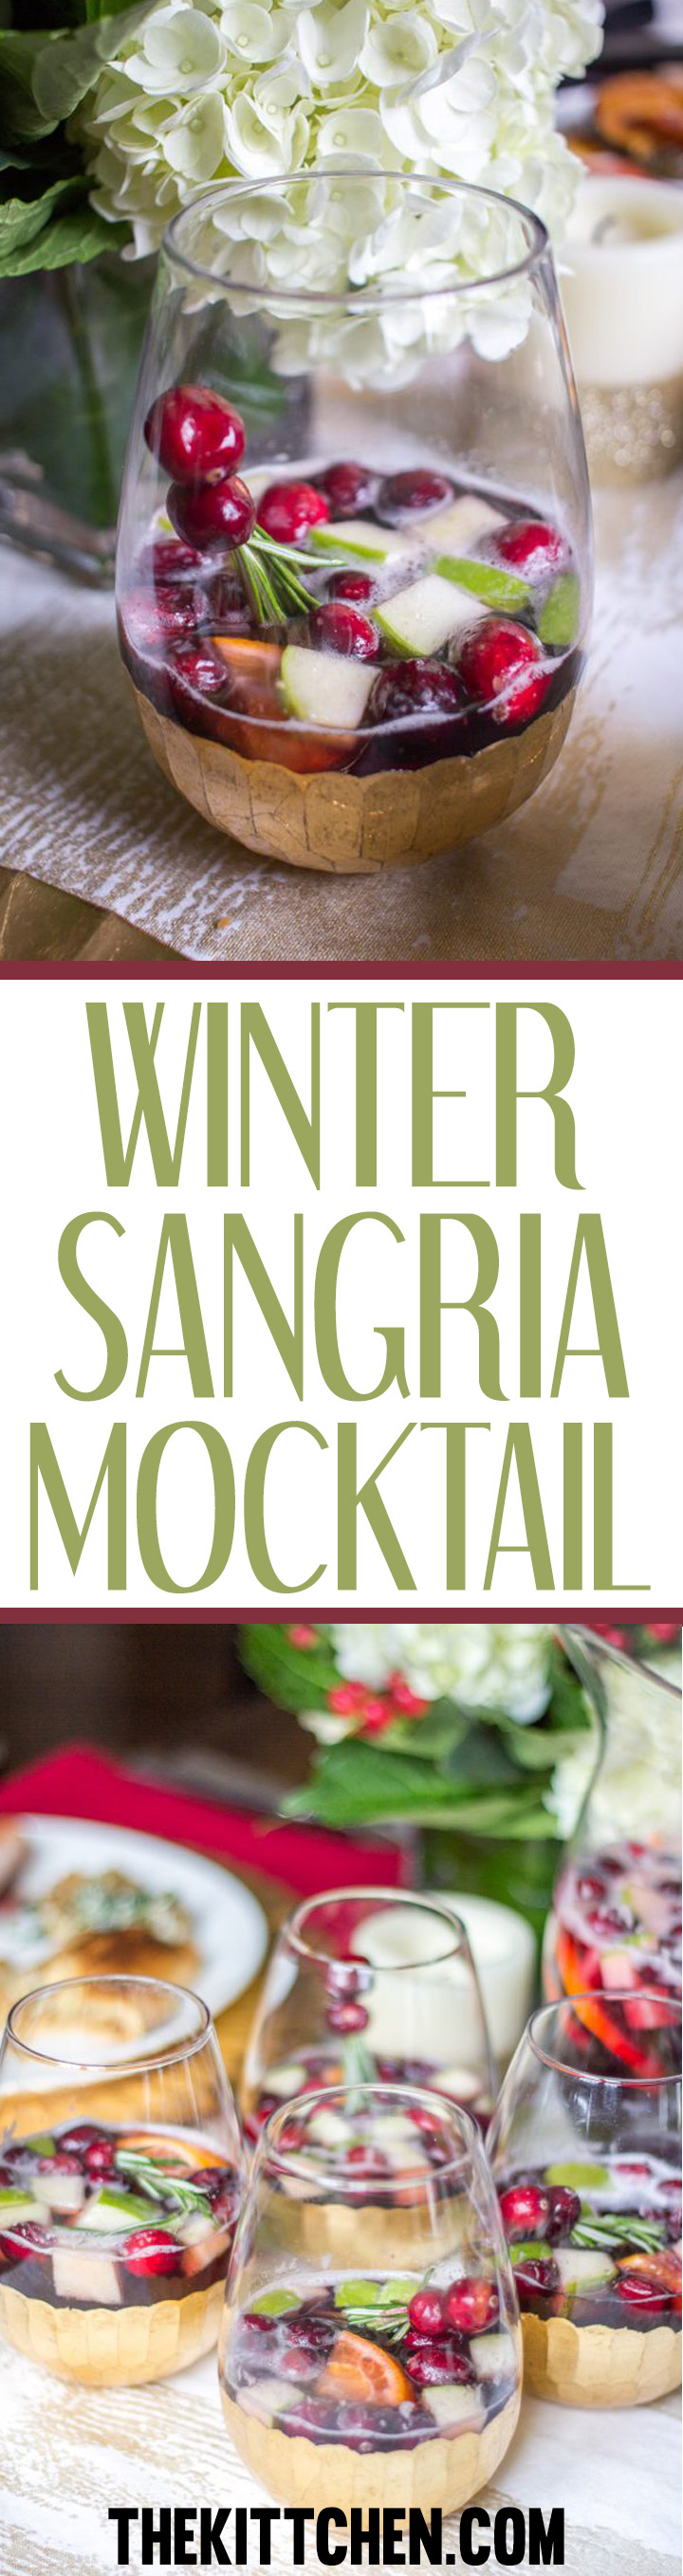 This Winter Sangria mocktail is a delicious alcohol free drink to serve at parties.